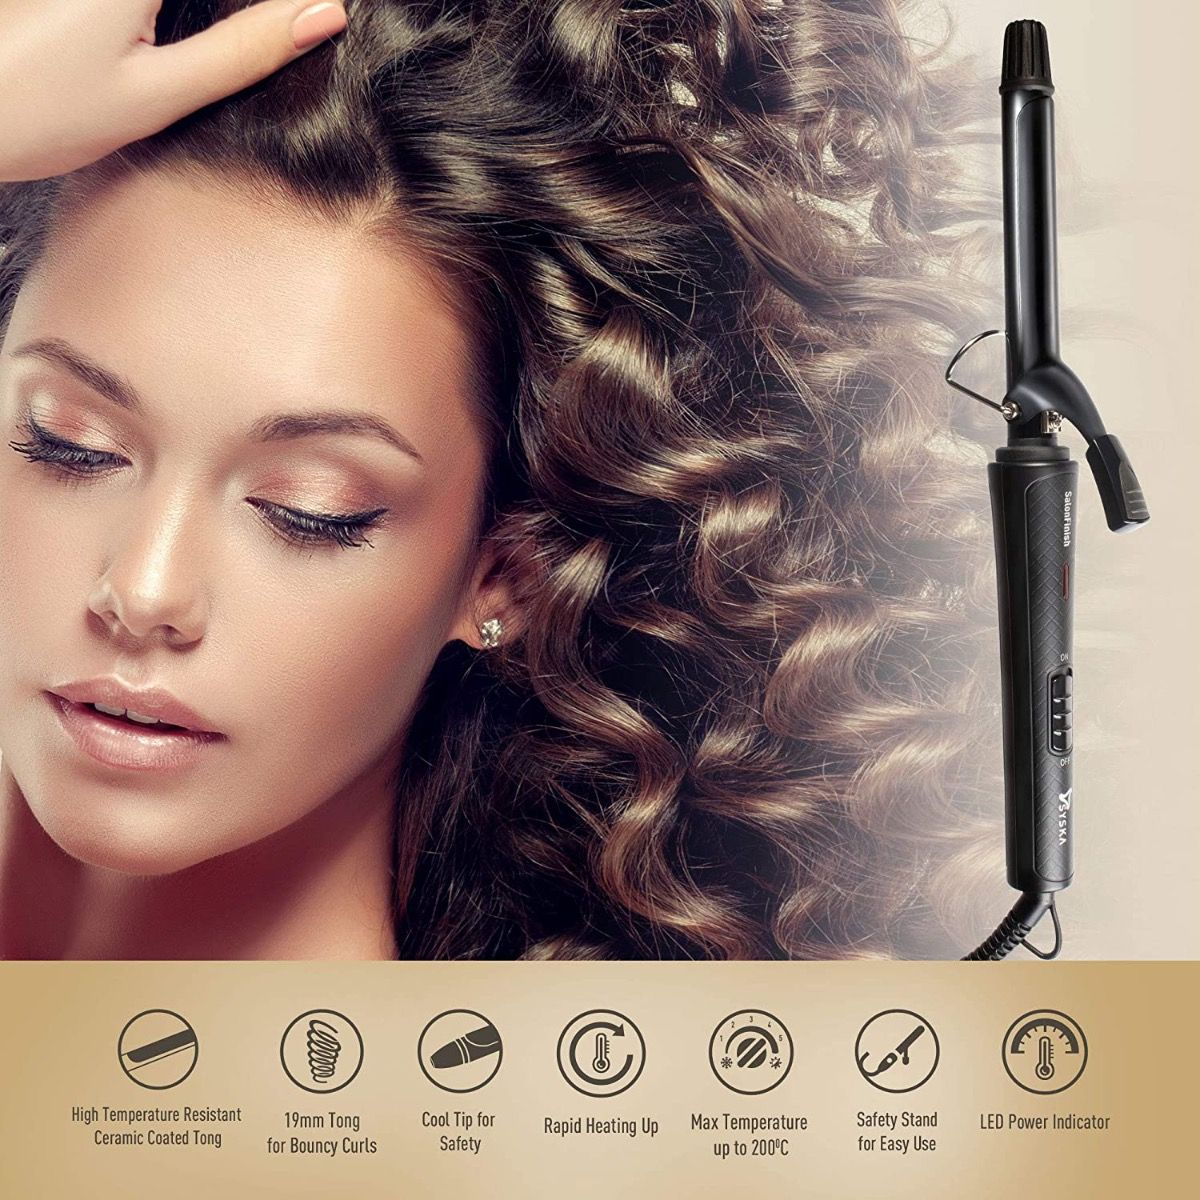 Syska HC700 SalonFinish 19mm Hair Curler